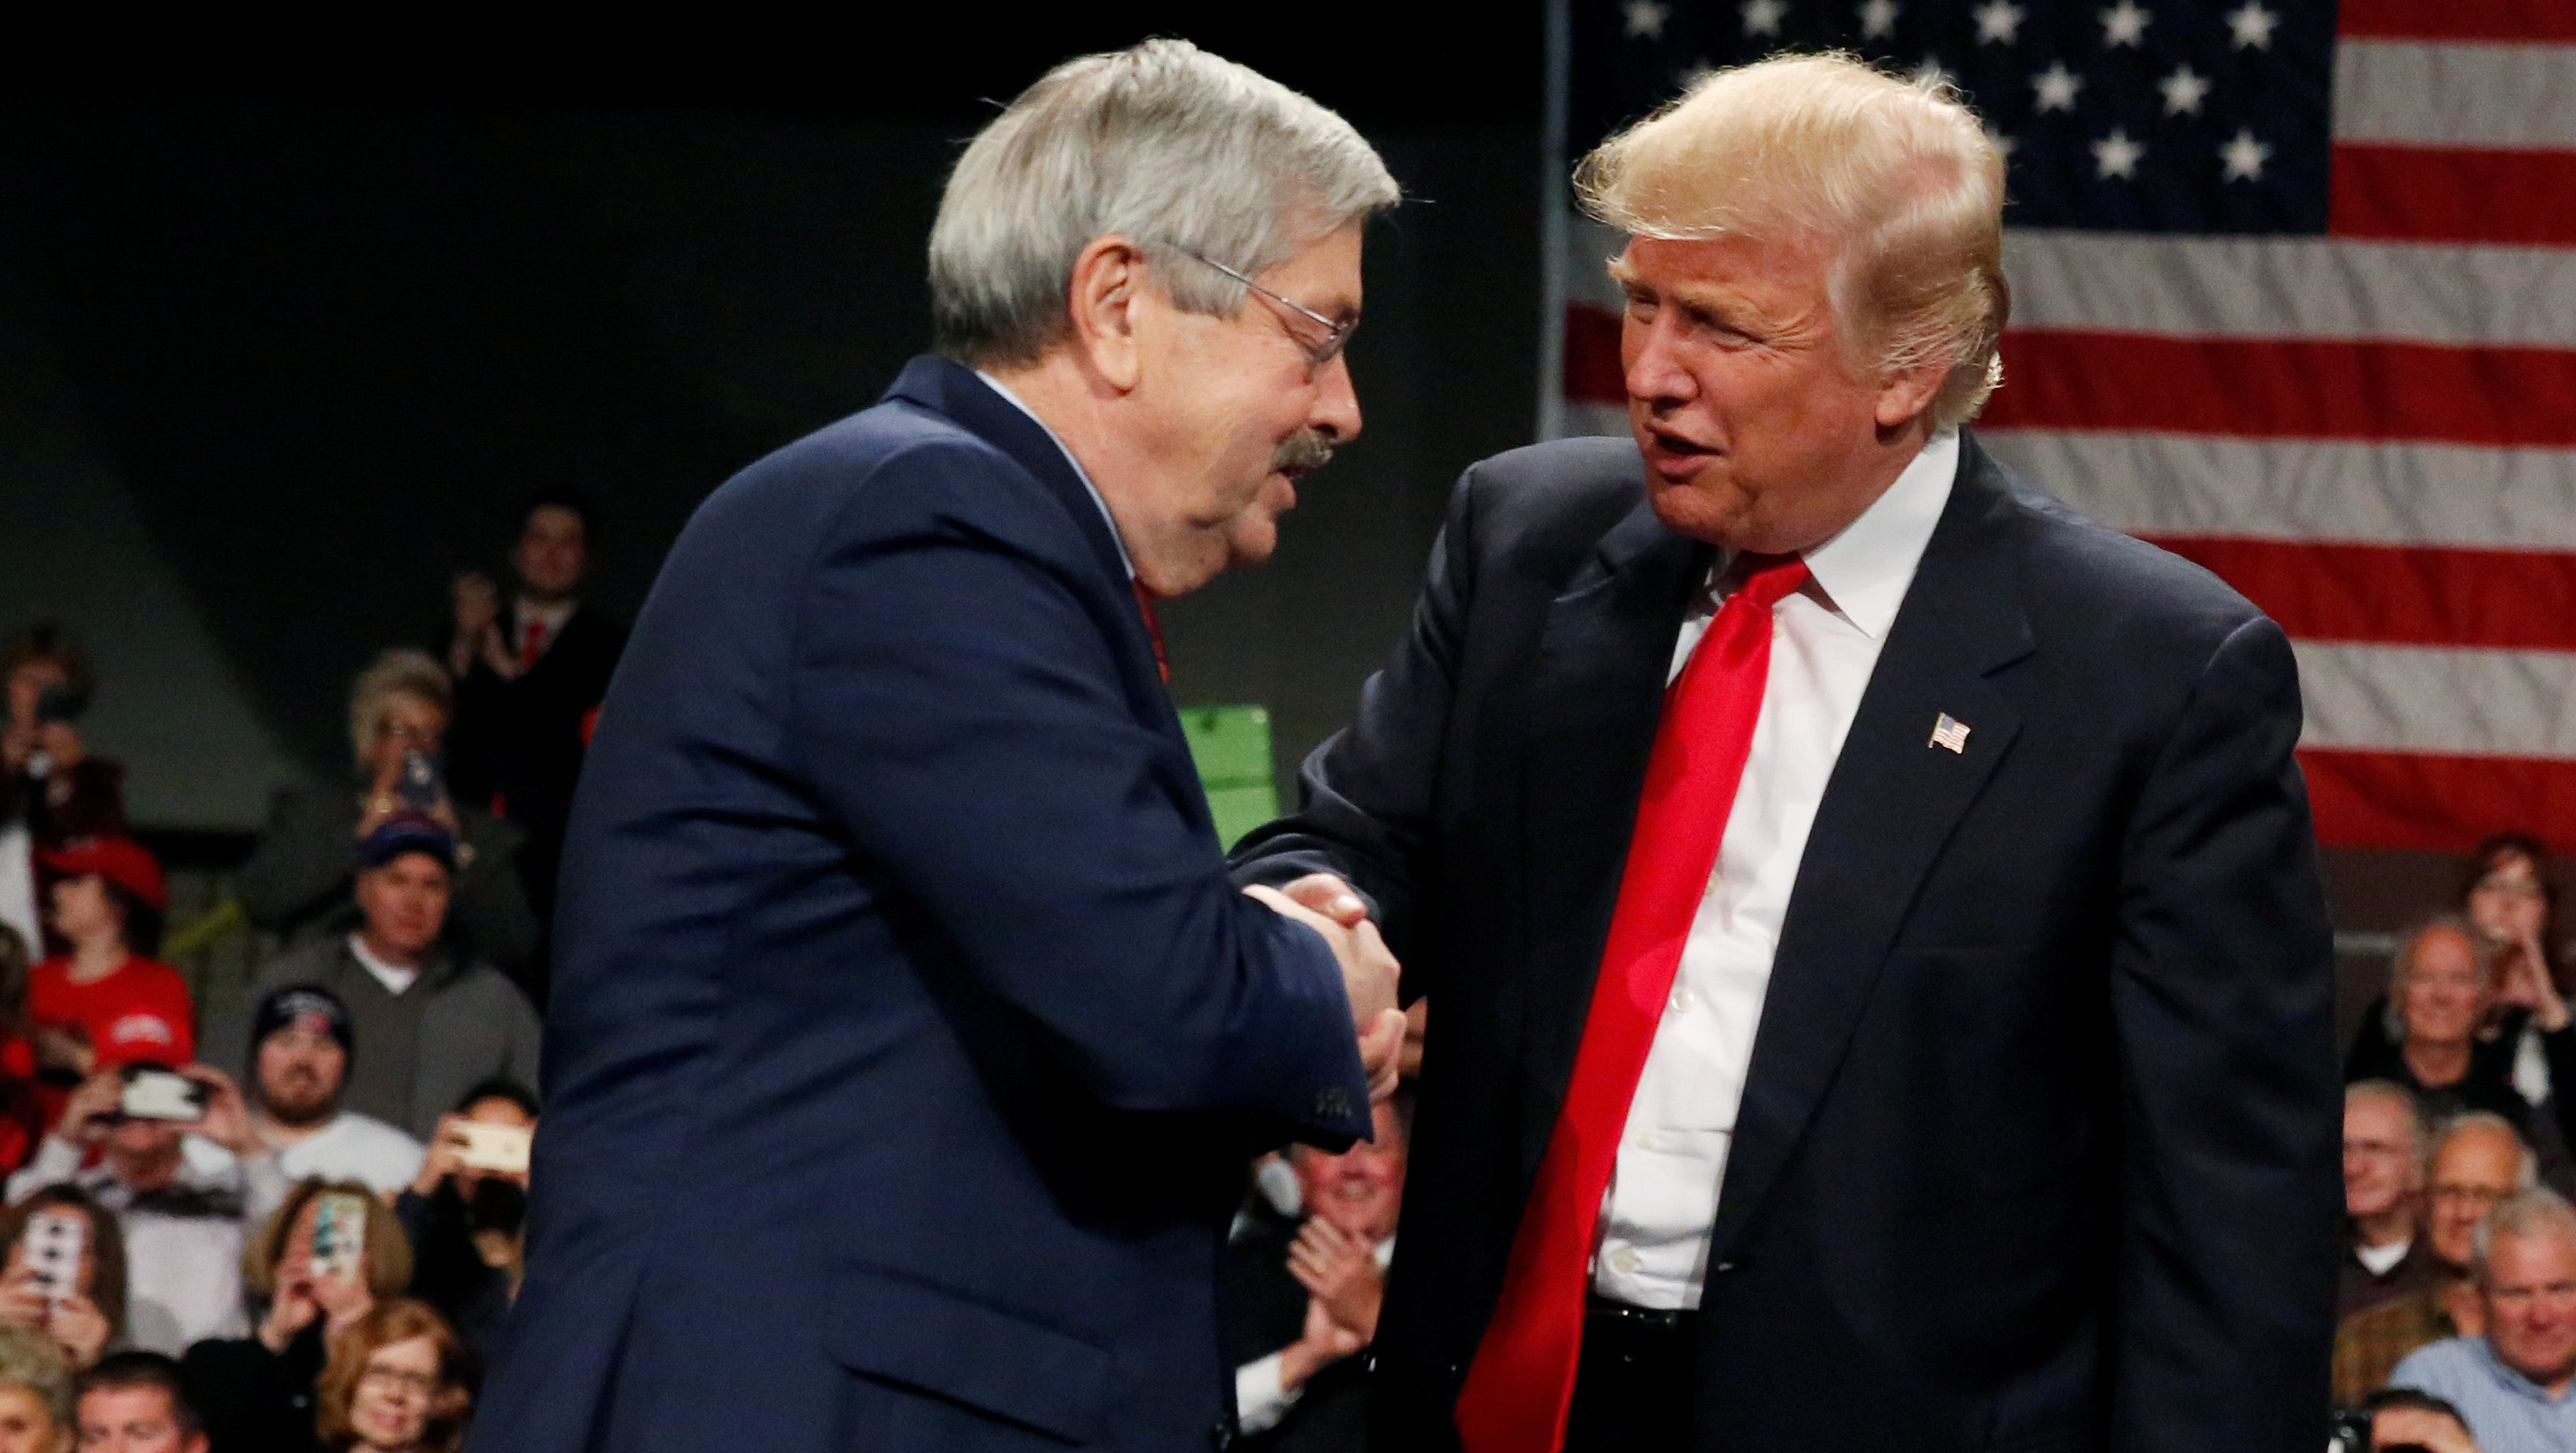 U.S. President-elect Donald Trump shakes hands with Governor of Iowa Terry Branstad (L) at the USA Thank You Tour event at the Iowa Events Center in Des Moines, Iowa, U.S., December 8, 2016.